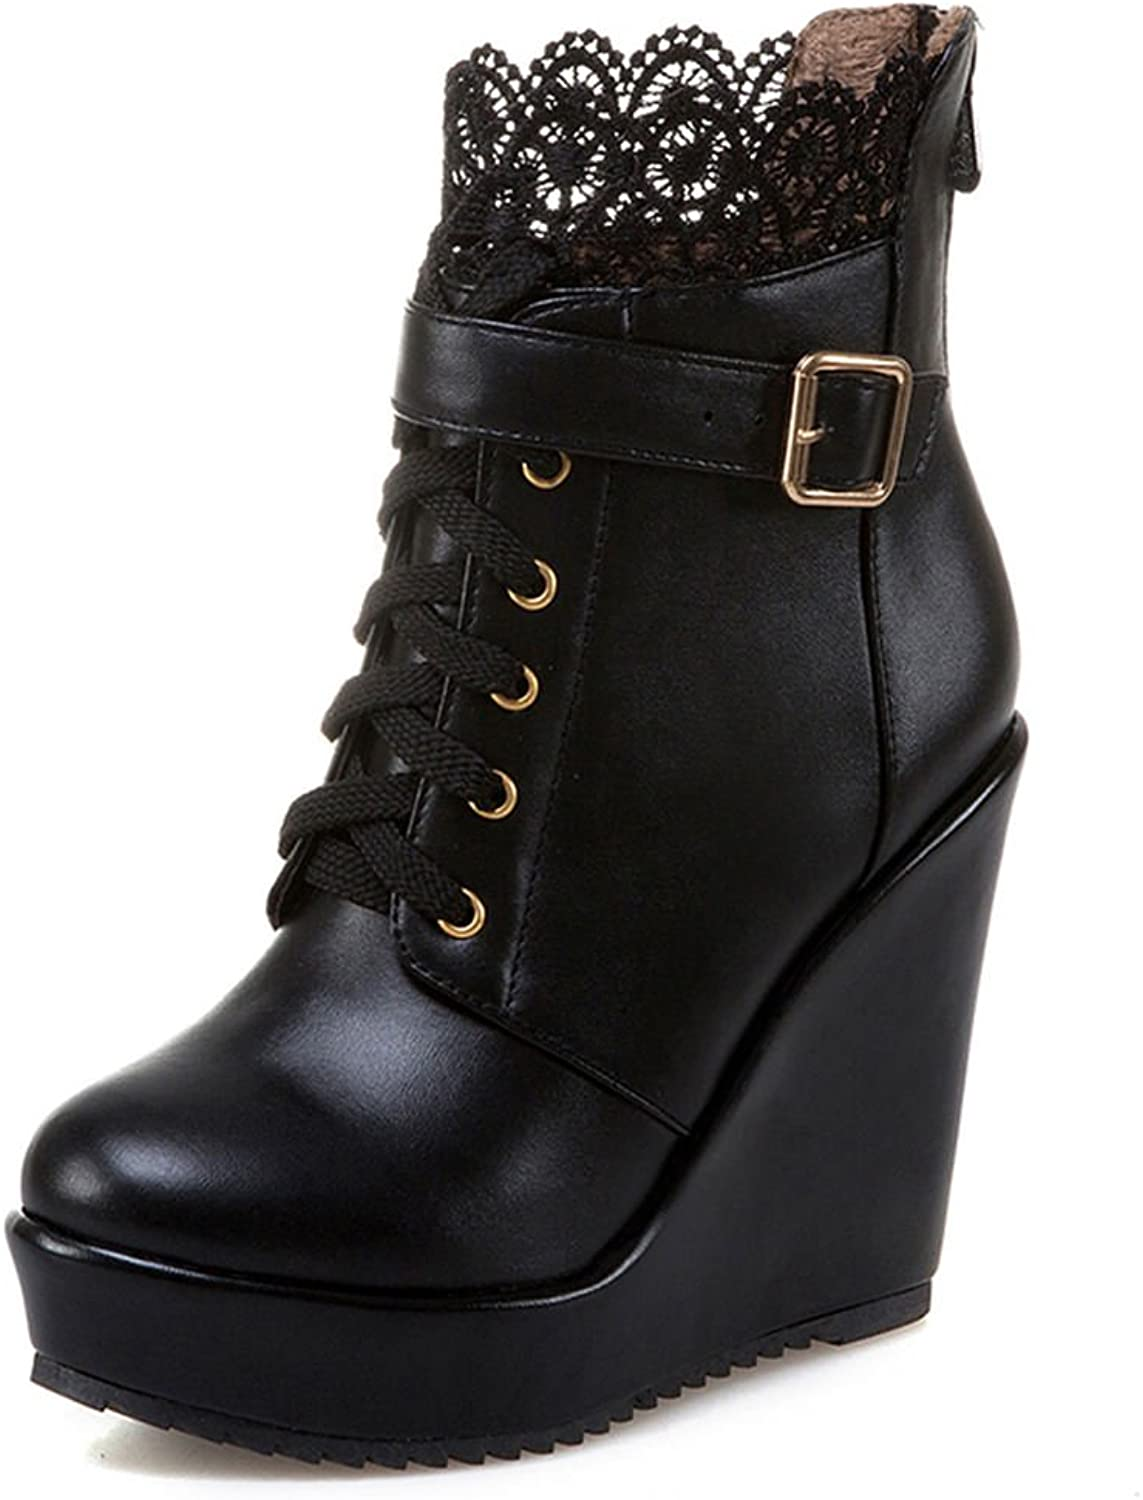 SaraIris Lace Buckle Wedges Platform Solid Ankle Boots for Women